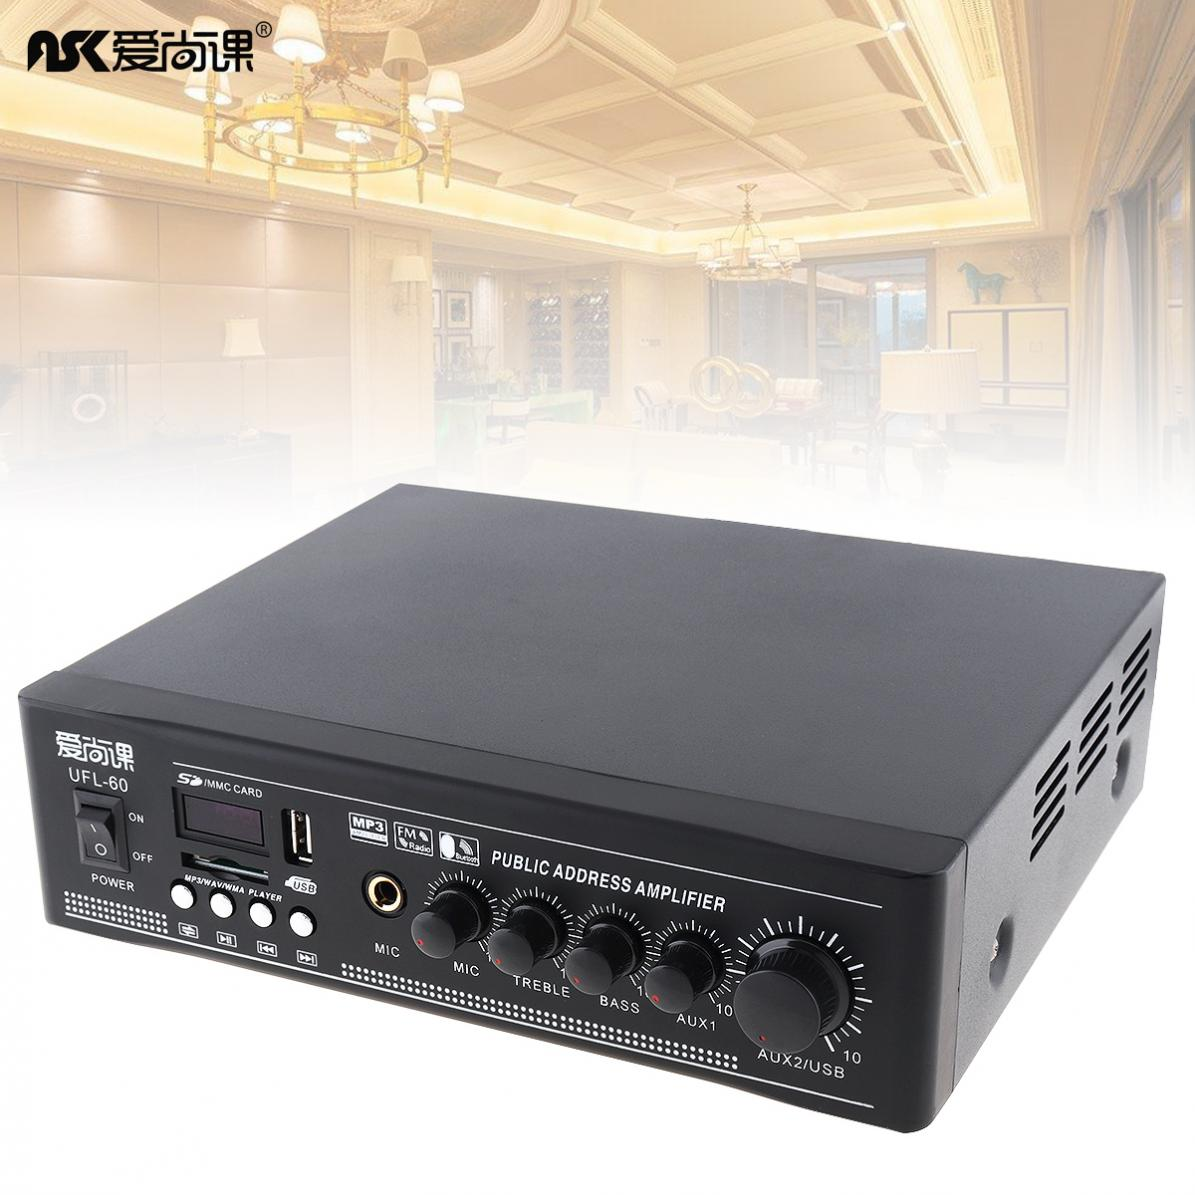 UFL-60 50w Bluetooth Constant Pressure Amplifier with USB Playback Function for Background Music System(China)